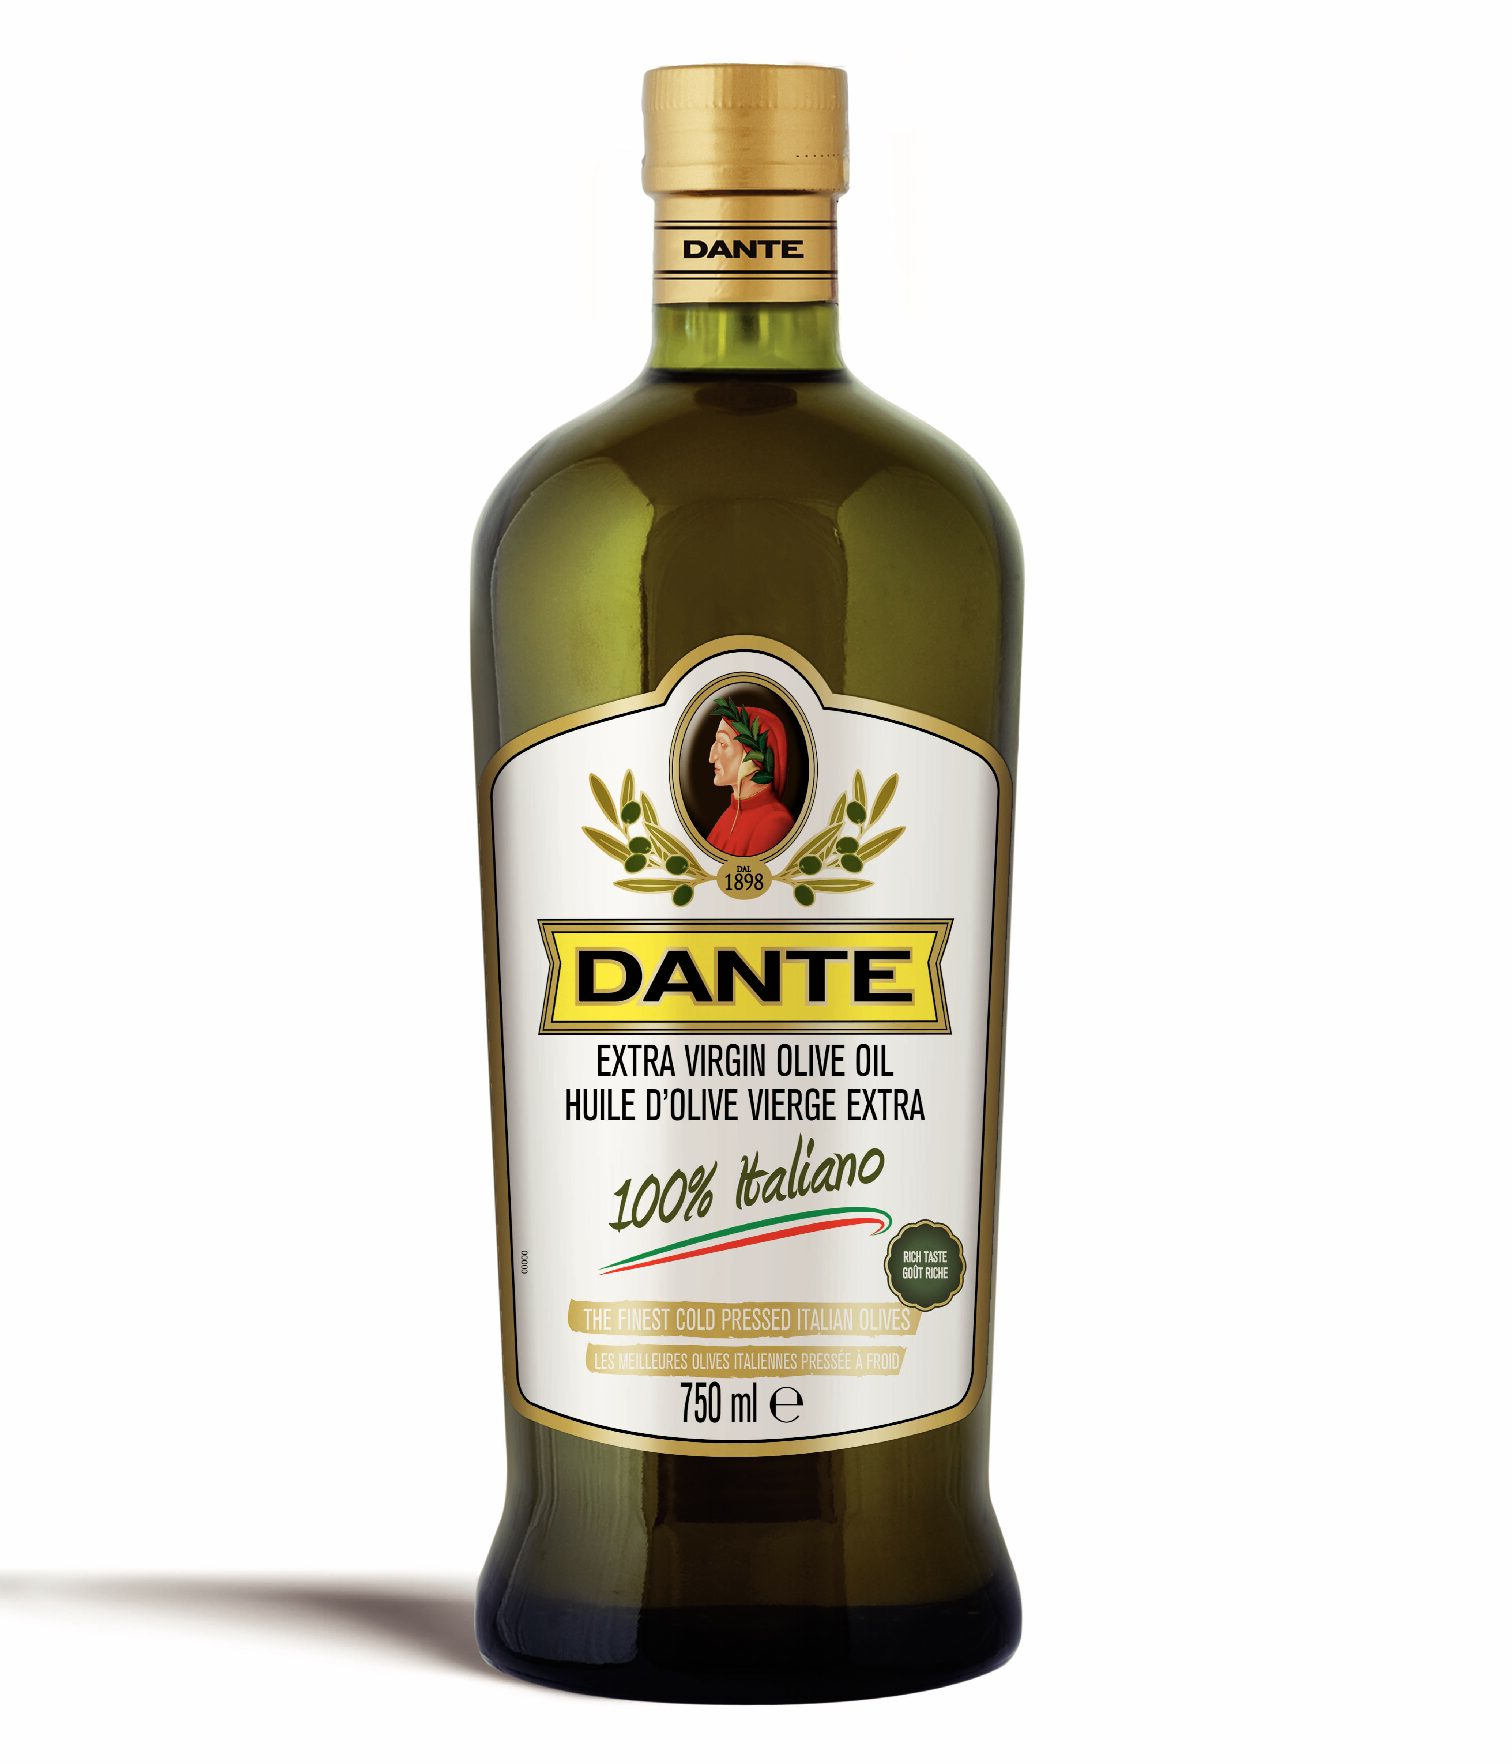 Dante Premium 100% Extra Virgin Olive Oil 750ml